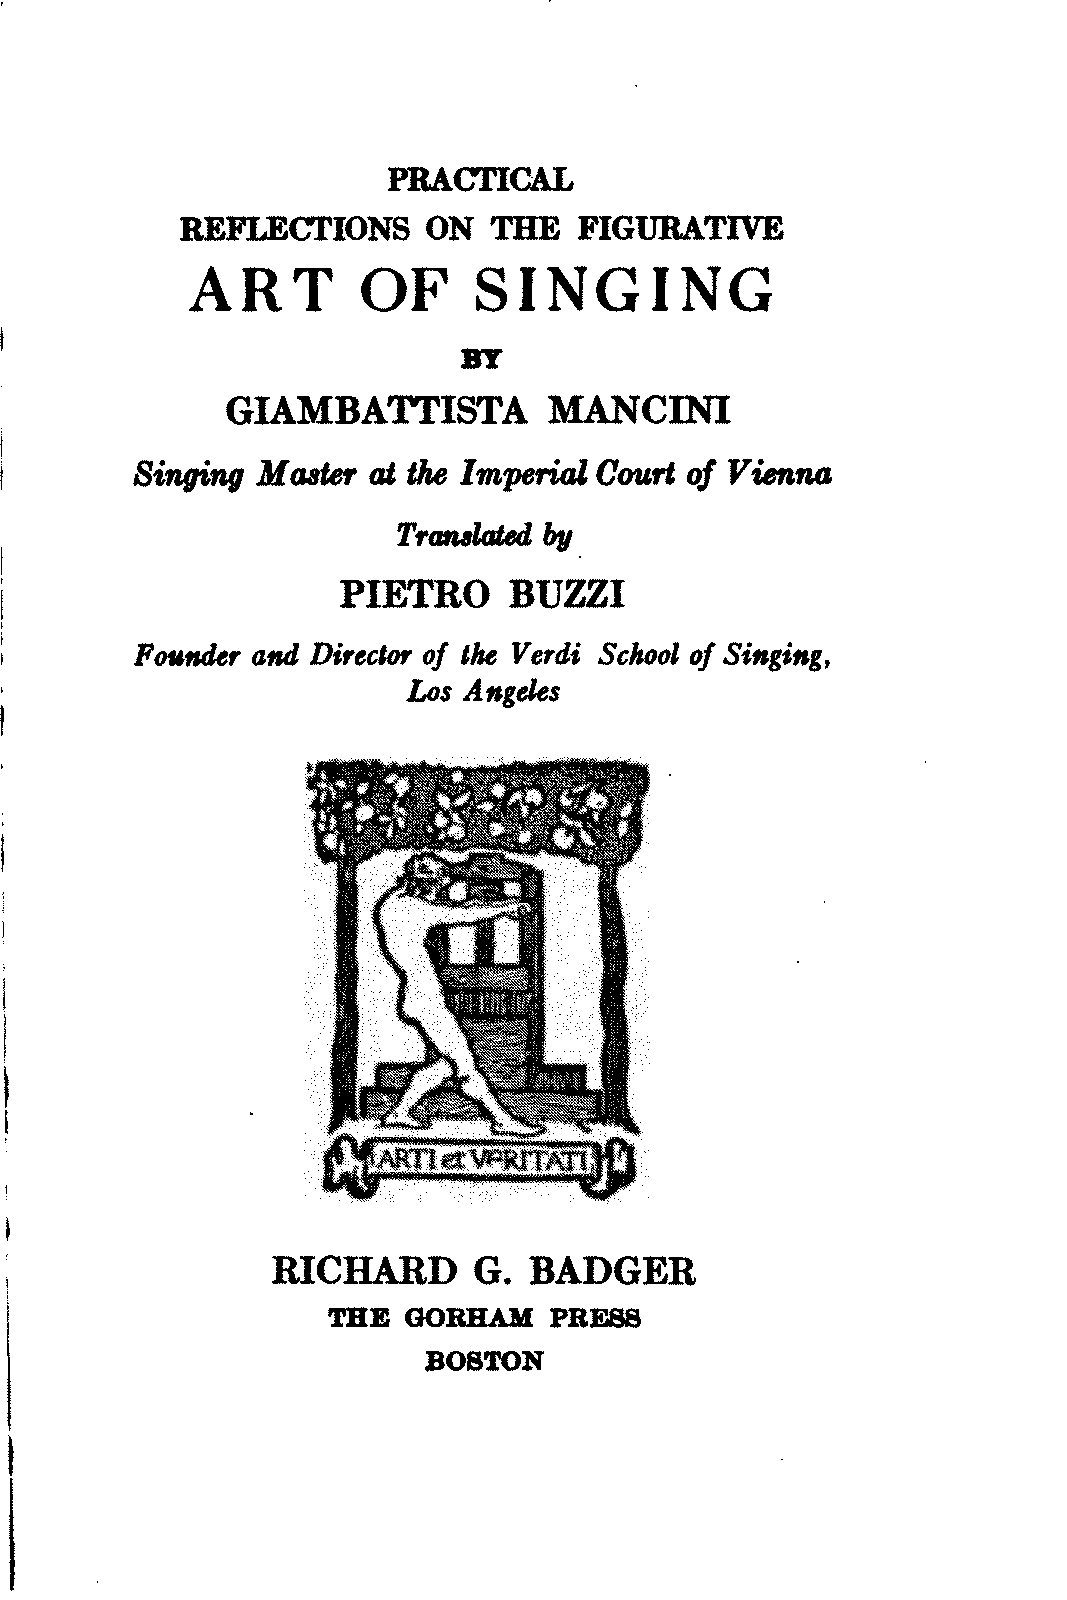 PMLP61168-Mancini - Practical Reflections on the Figurative Art of Singing.pdf